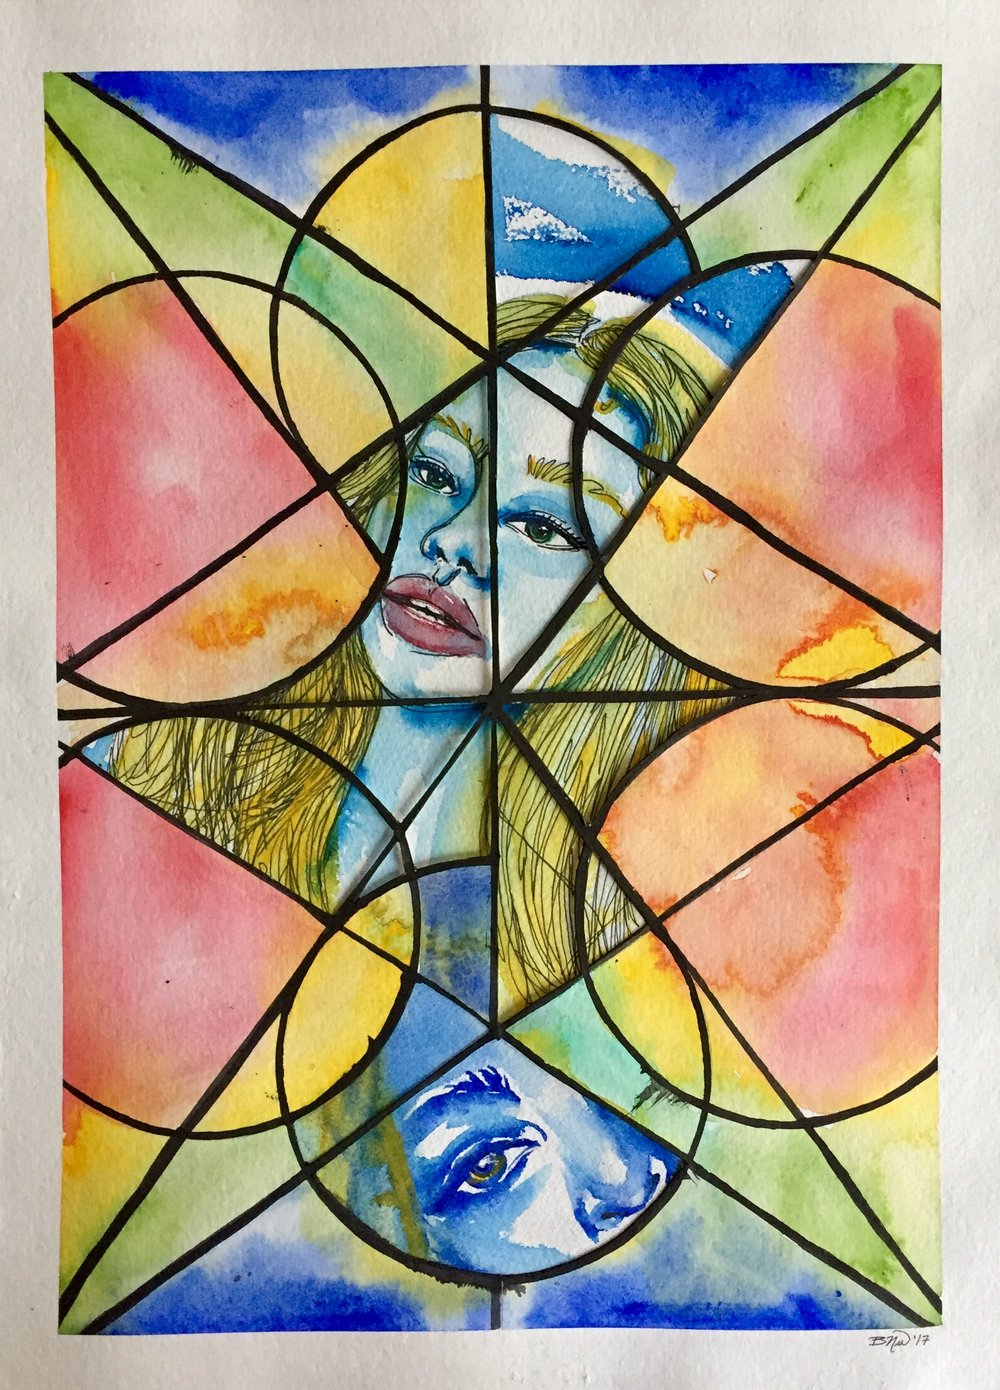 Glass Prism I   2017. Watercolor and ink collage on paper.  11 x 15.  $100 -  SOLD